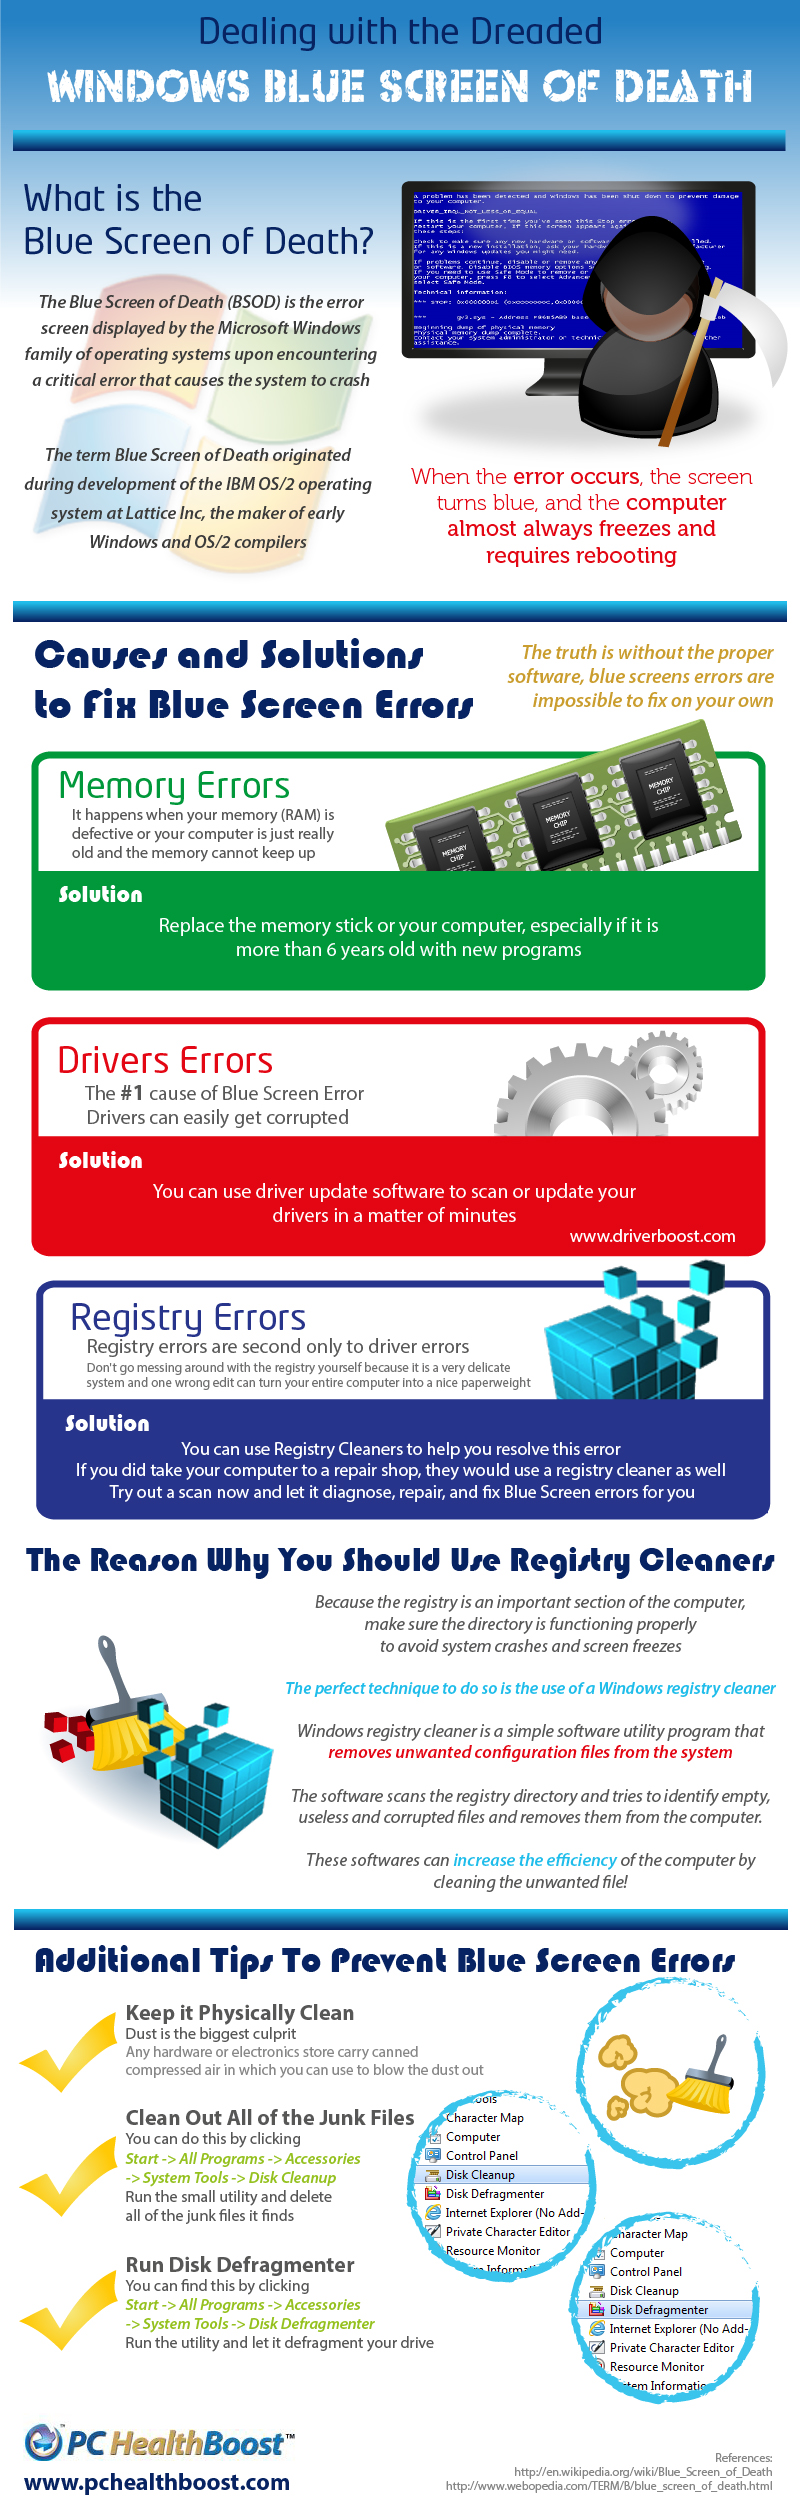 The Dreaded Blue Screen of Death [Infographic]